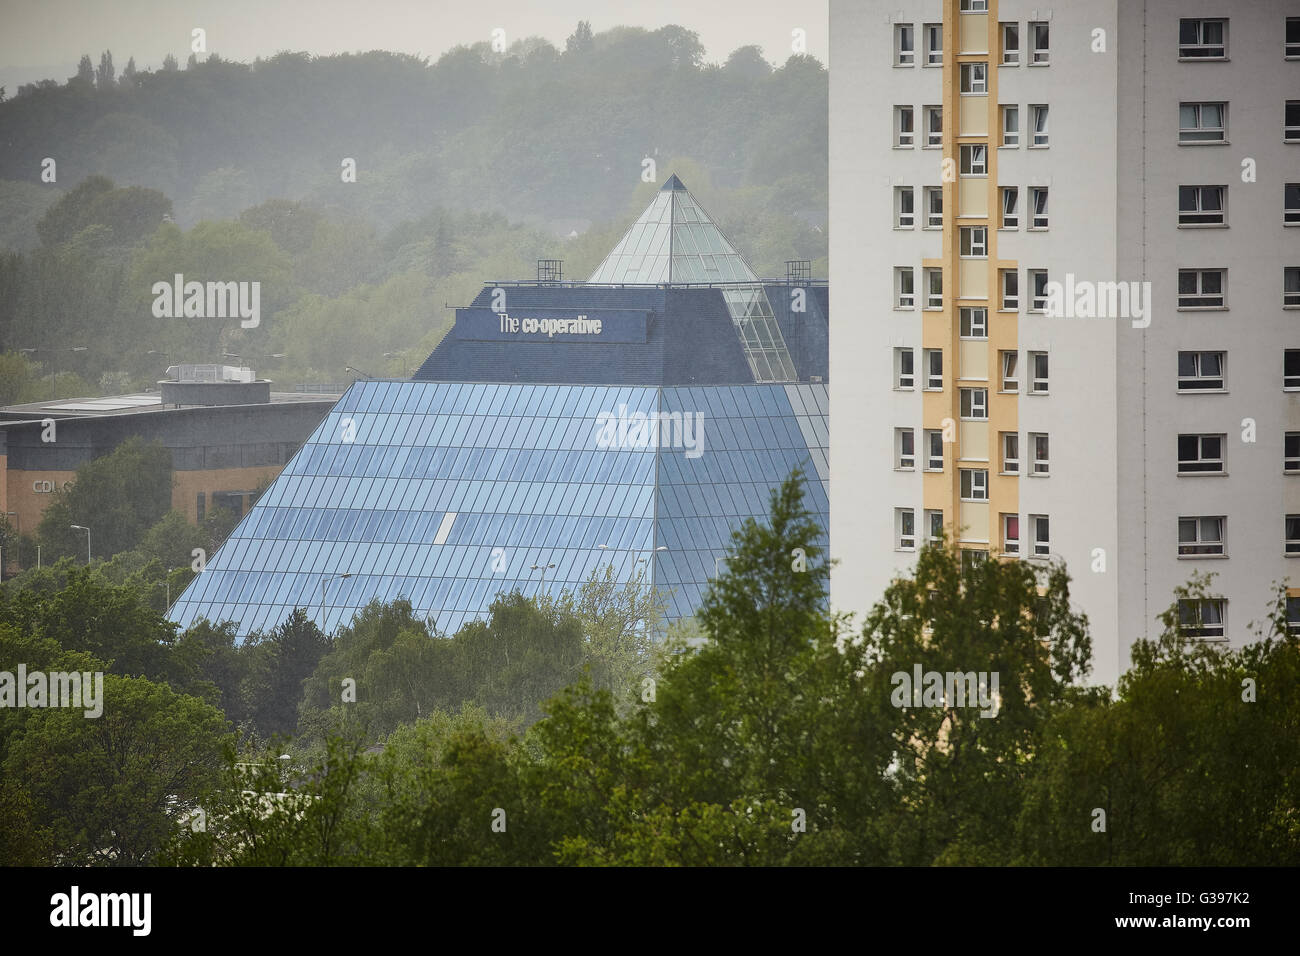 Stockport cooperative coop banking building pyramid   view beyond trees The 'Stockport Pyramid' was designed - Stock Image